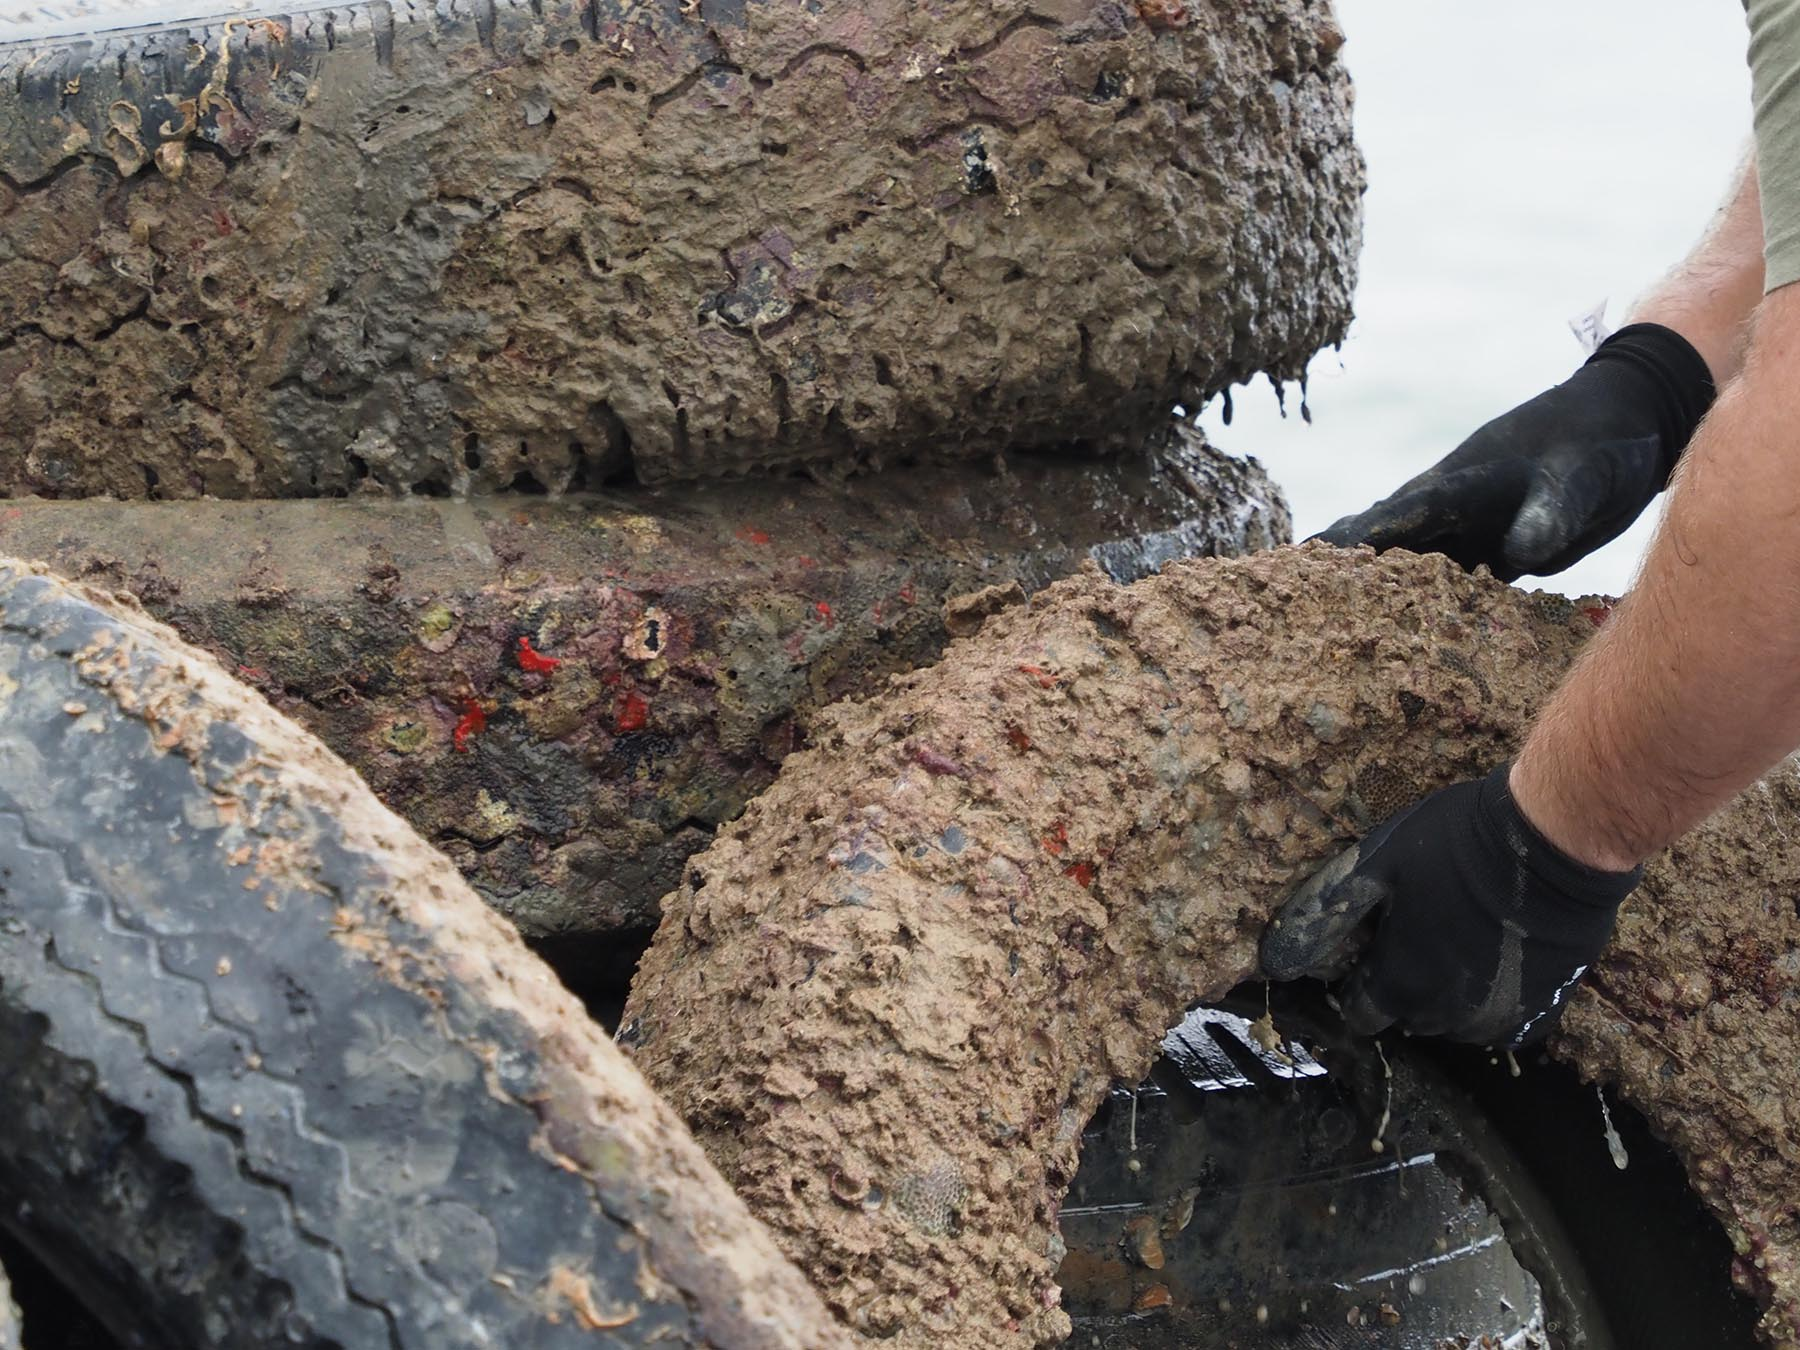 <p>Tires collected during the Kaneohe Bay cleanup will be picked up and taken away for incineration. Ocean Defense Alliance volunteers were able to procure a fee waiver from the city to have the tires disposed of at no cost.</p>